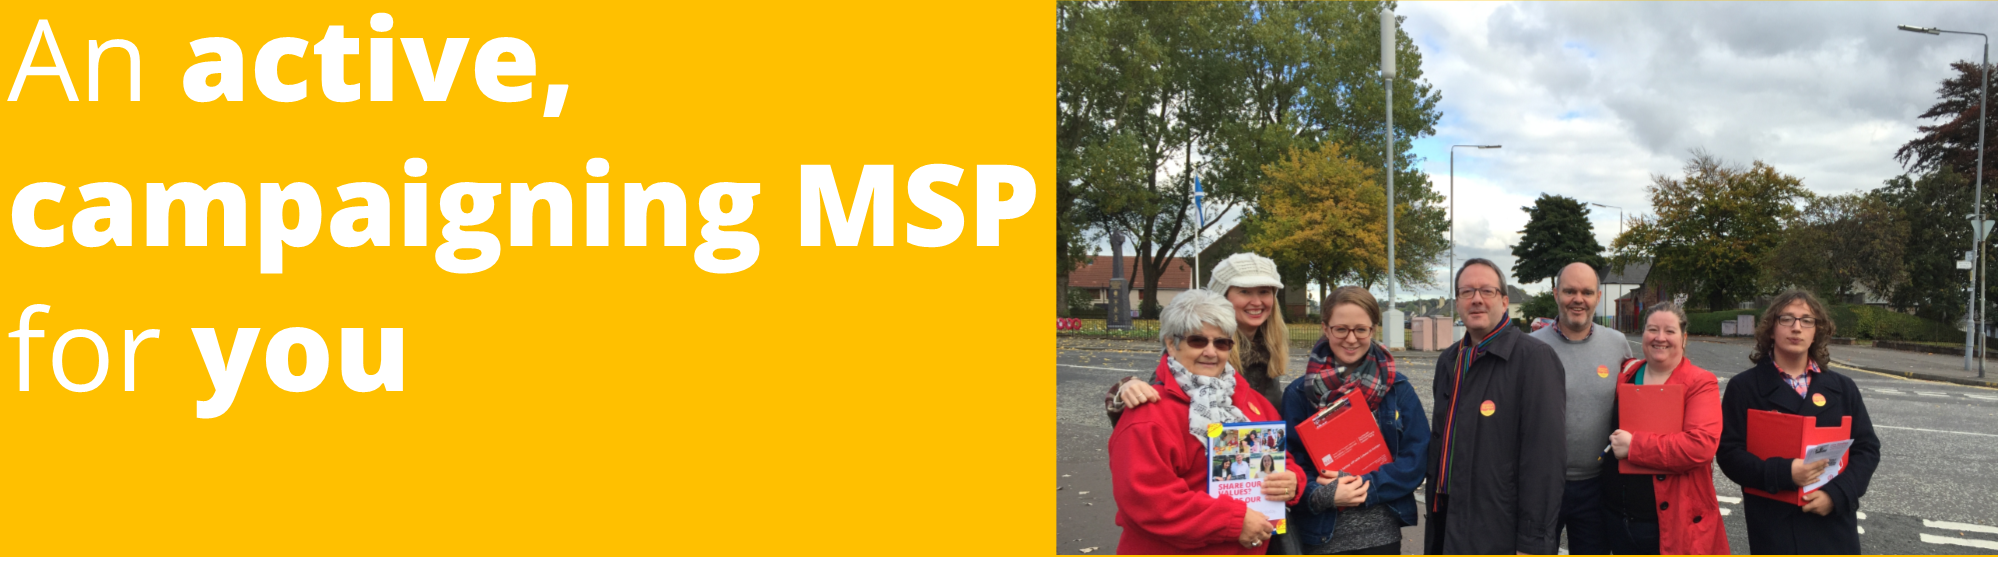 An active, campaigning MSP for you